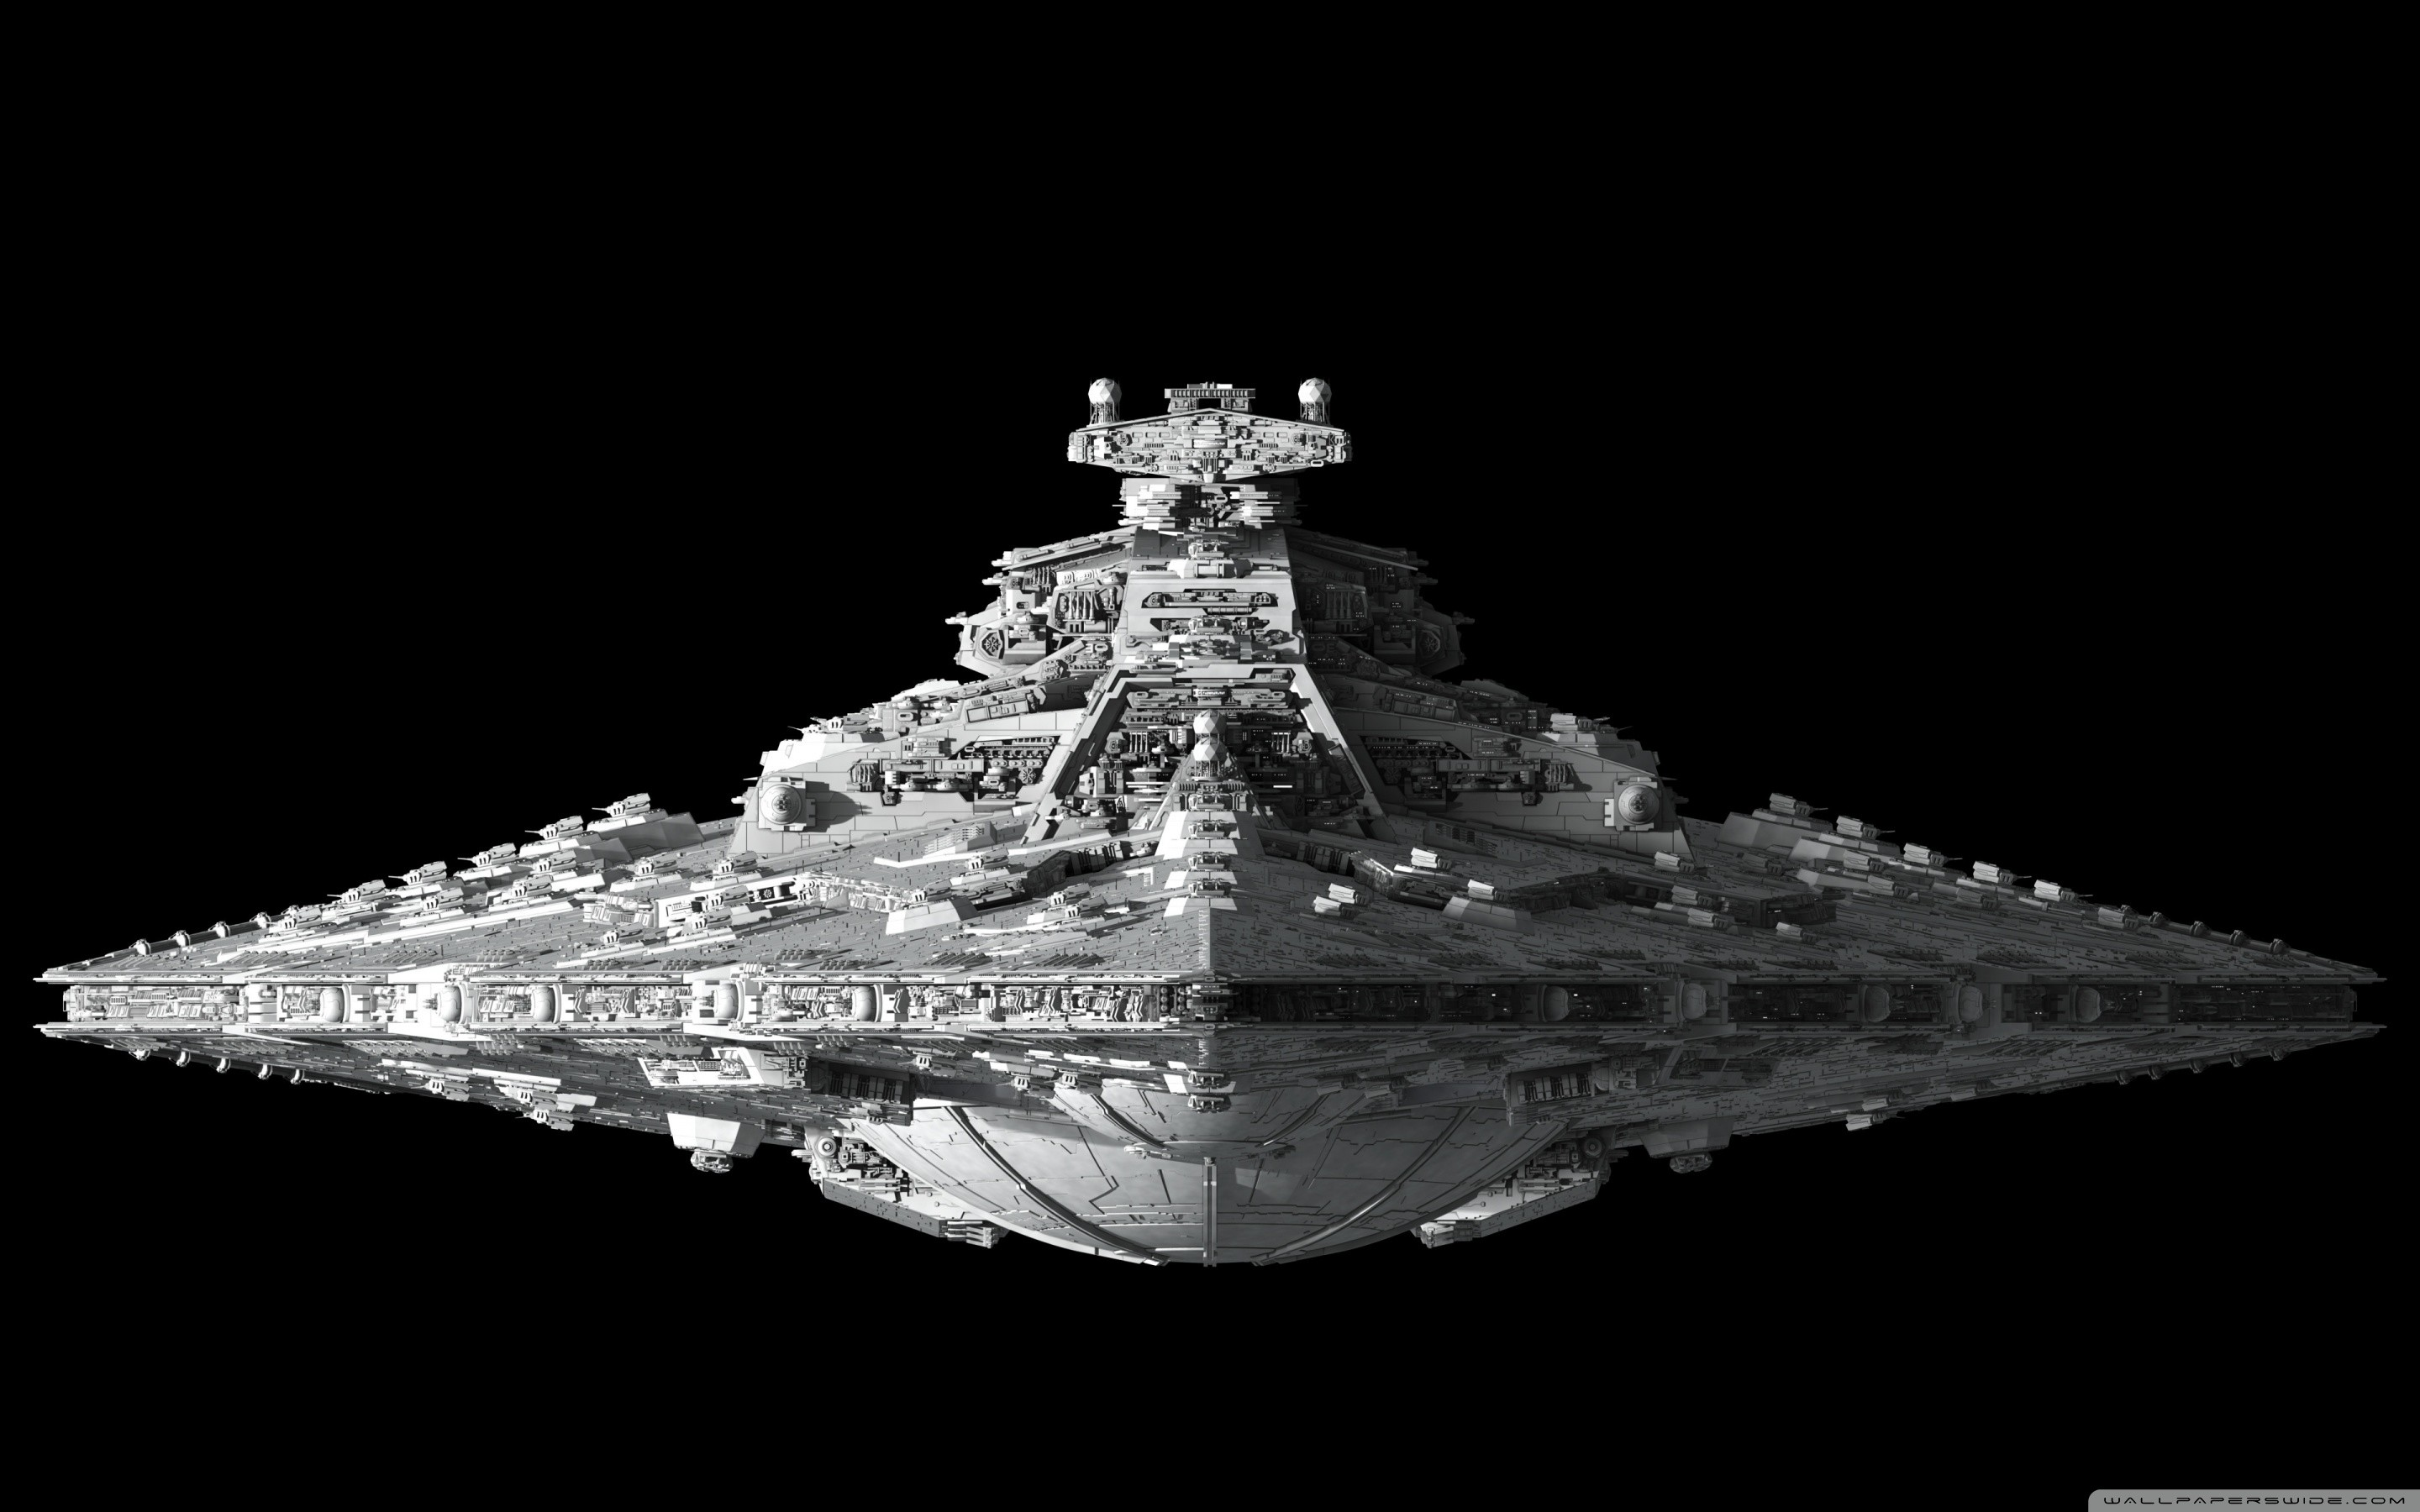 Star Wars 3 Monitor Wallpaper 22 Images